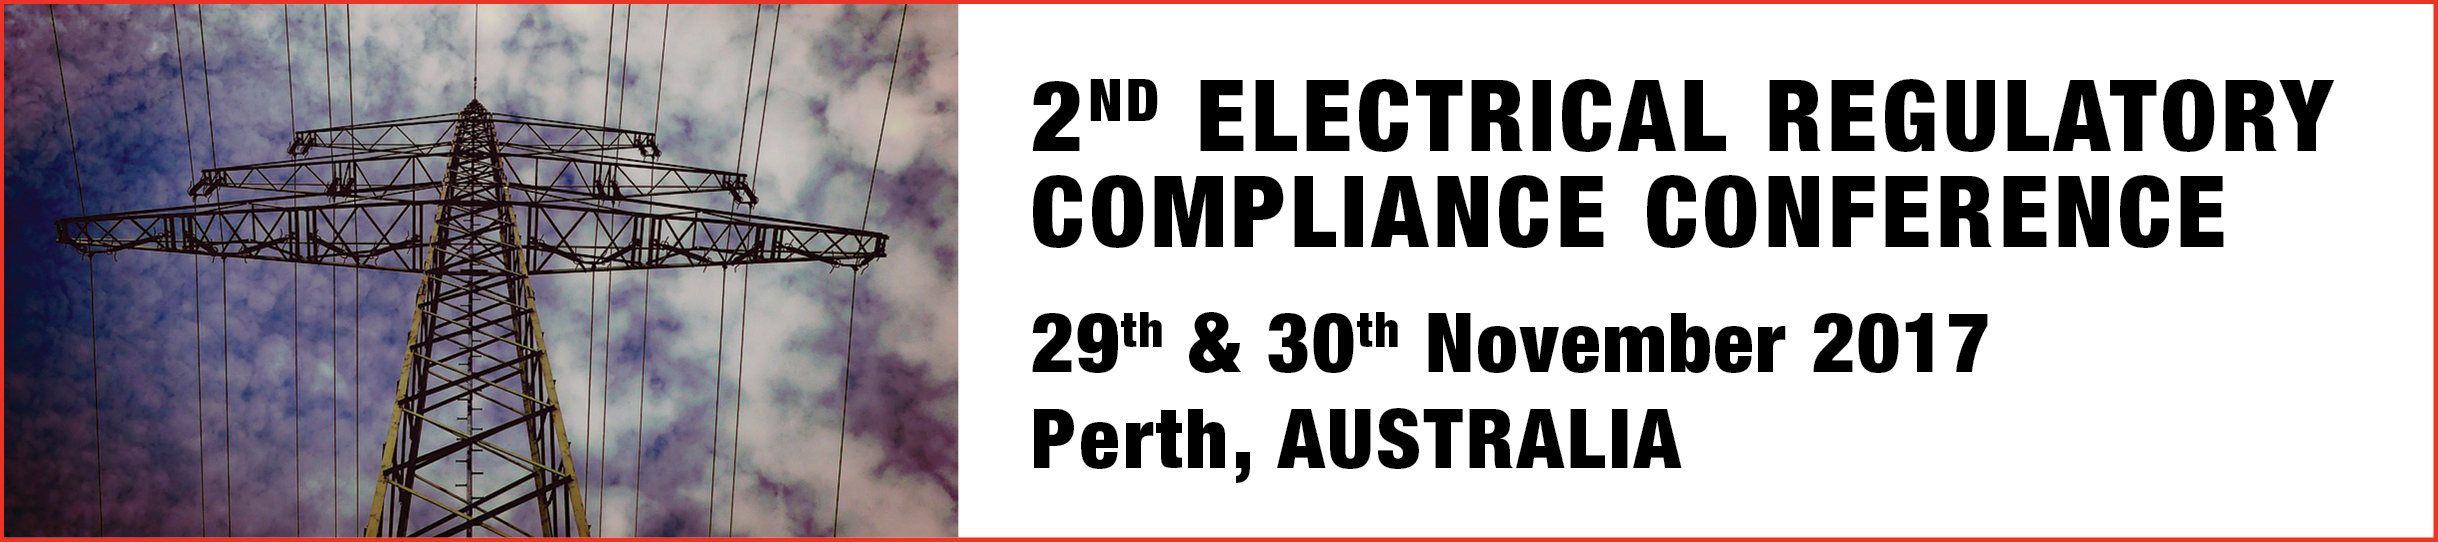 2nd Electrical Regulatory Compliance Conference